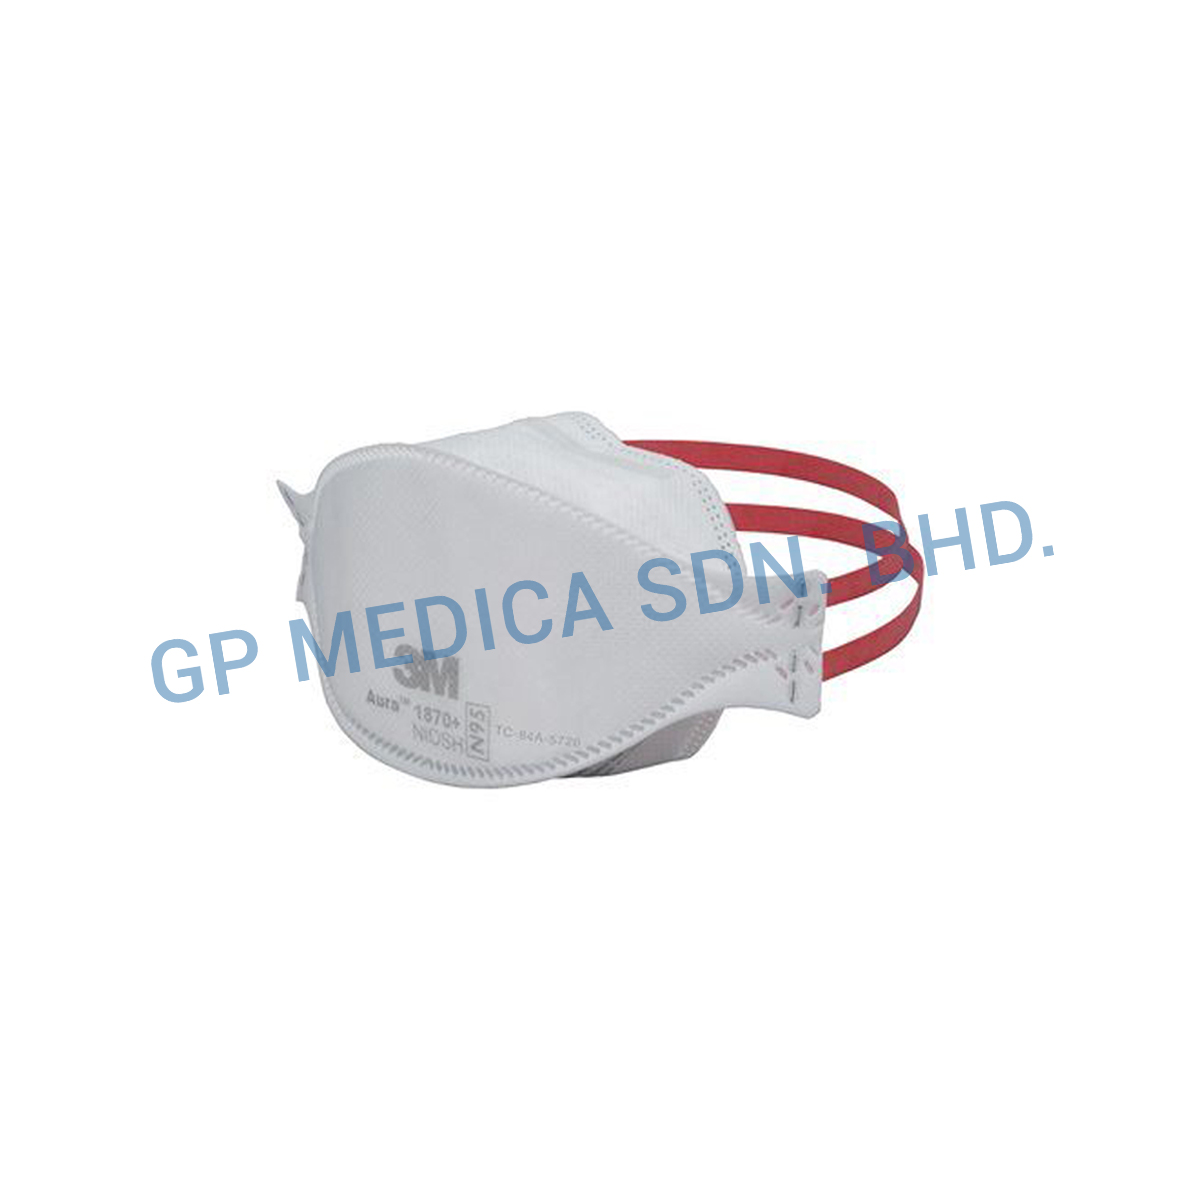 3M Aura Health Care Particulate Respirator and Surgical Mask 1870+, N95-1